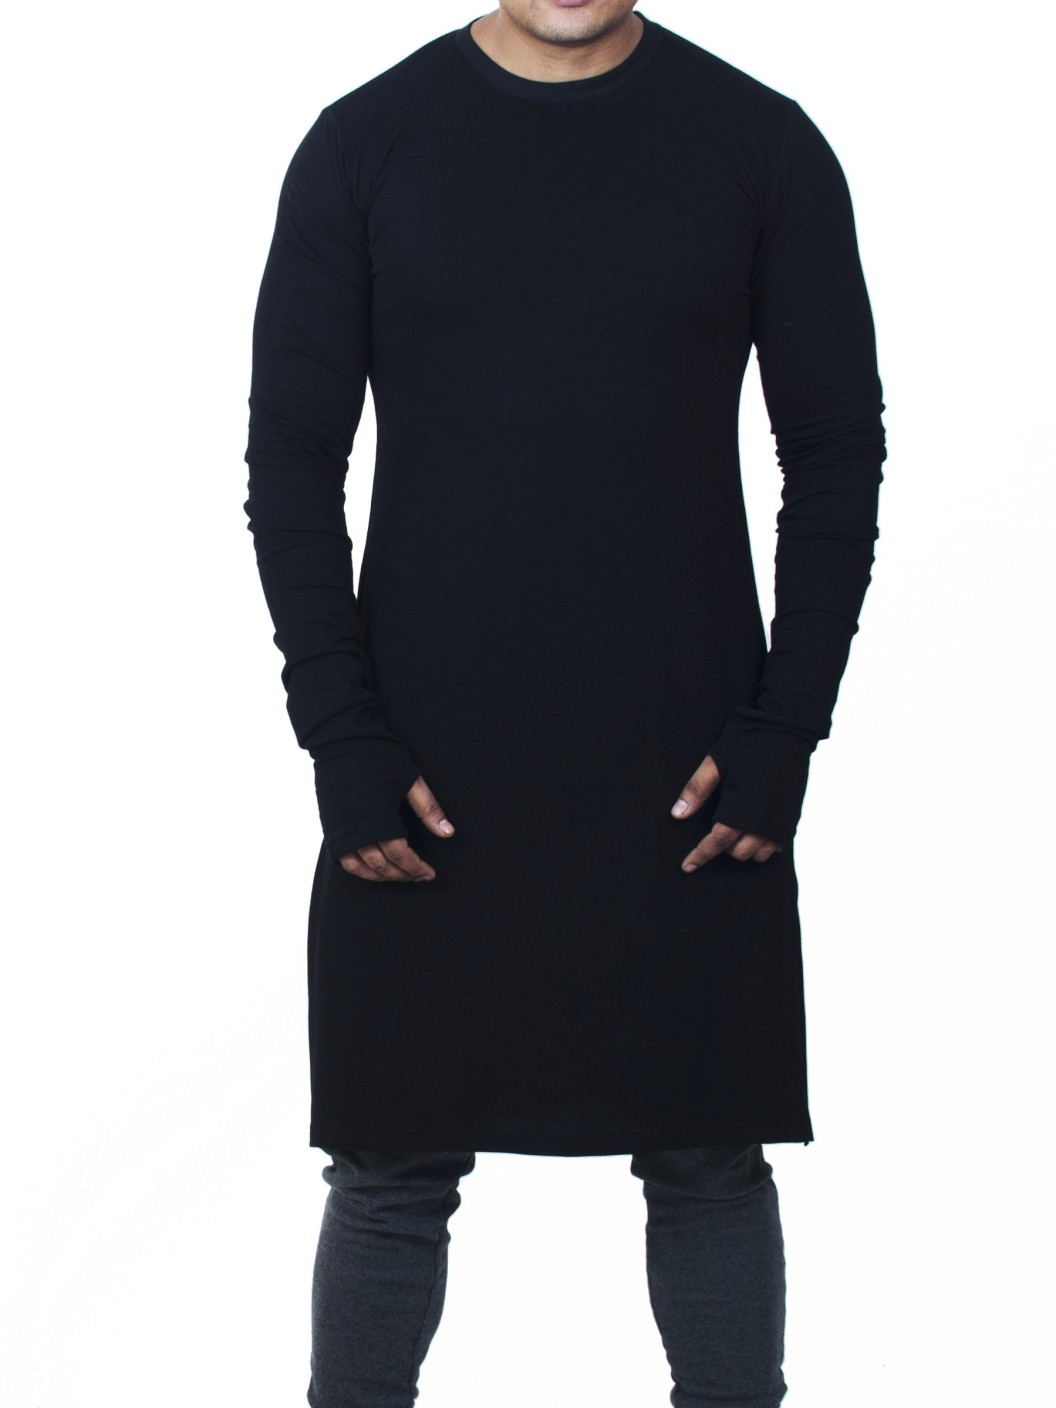 Fugazee lifestyle solid men 39 s round neck black t shirt for Best place to buy t shirts online